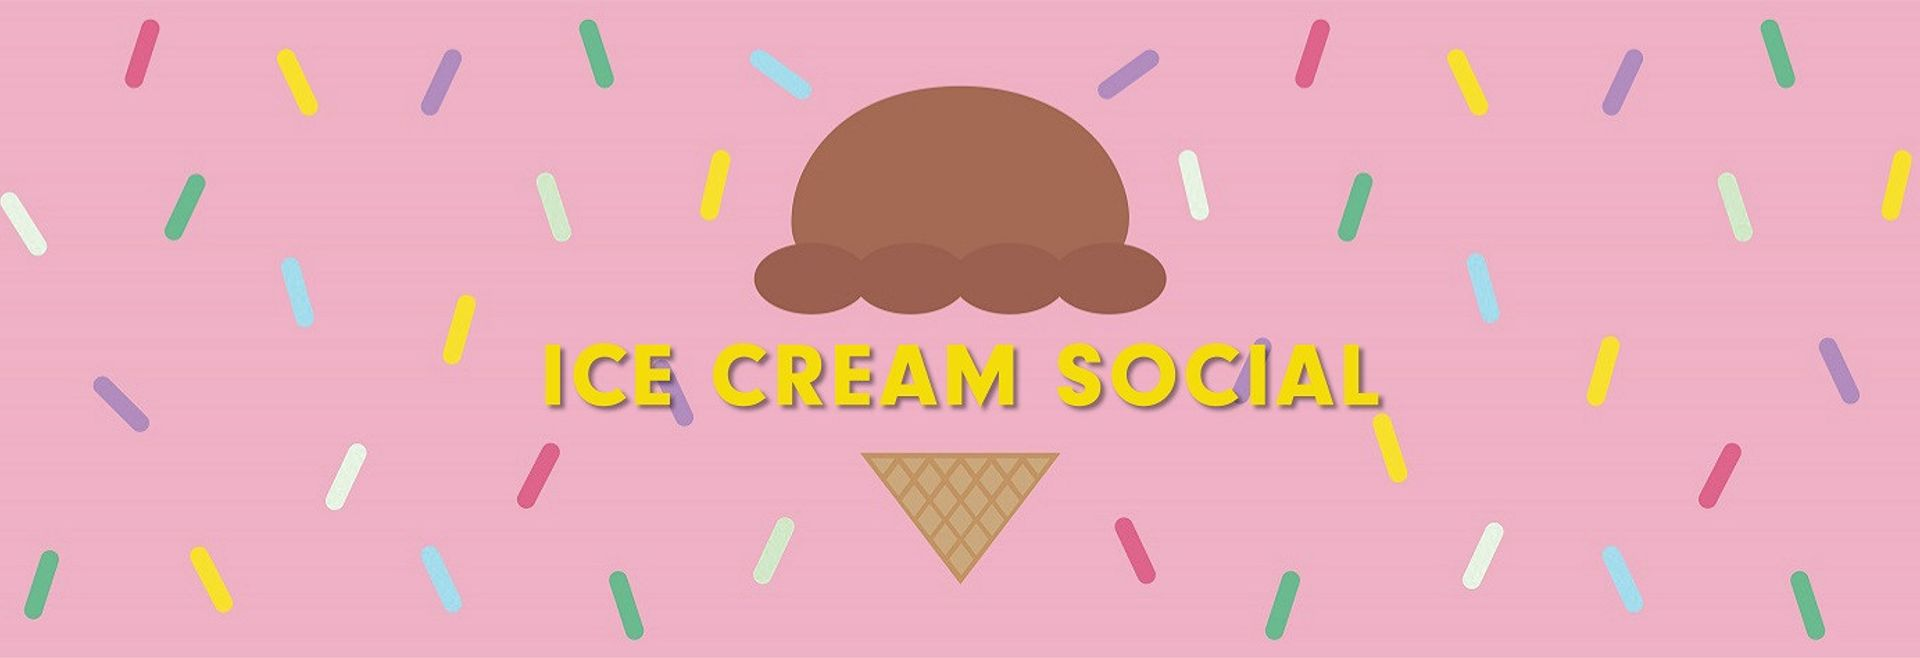 Ice Cream Social Promotion